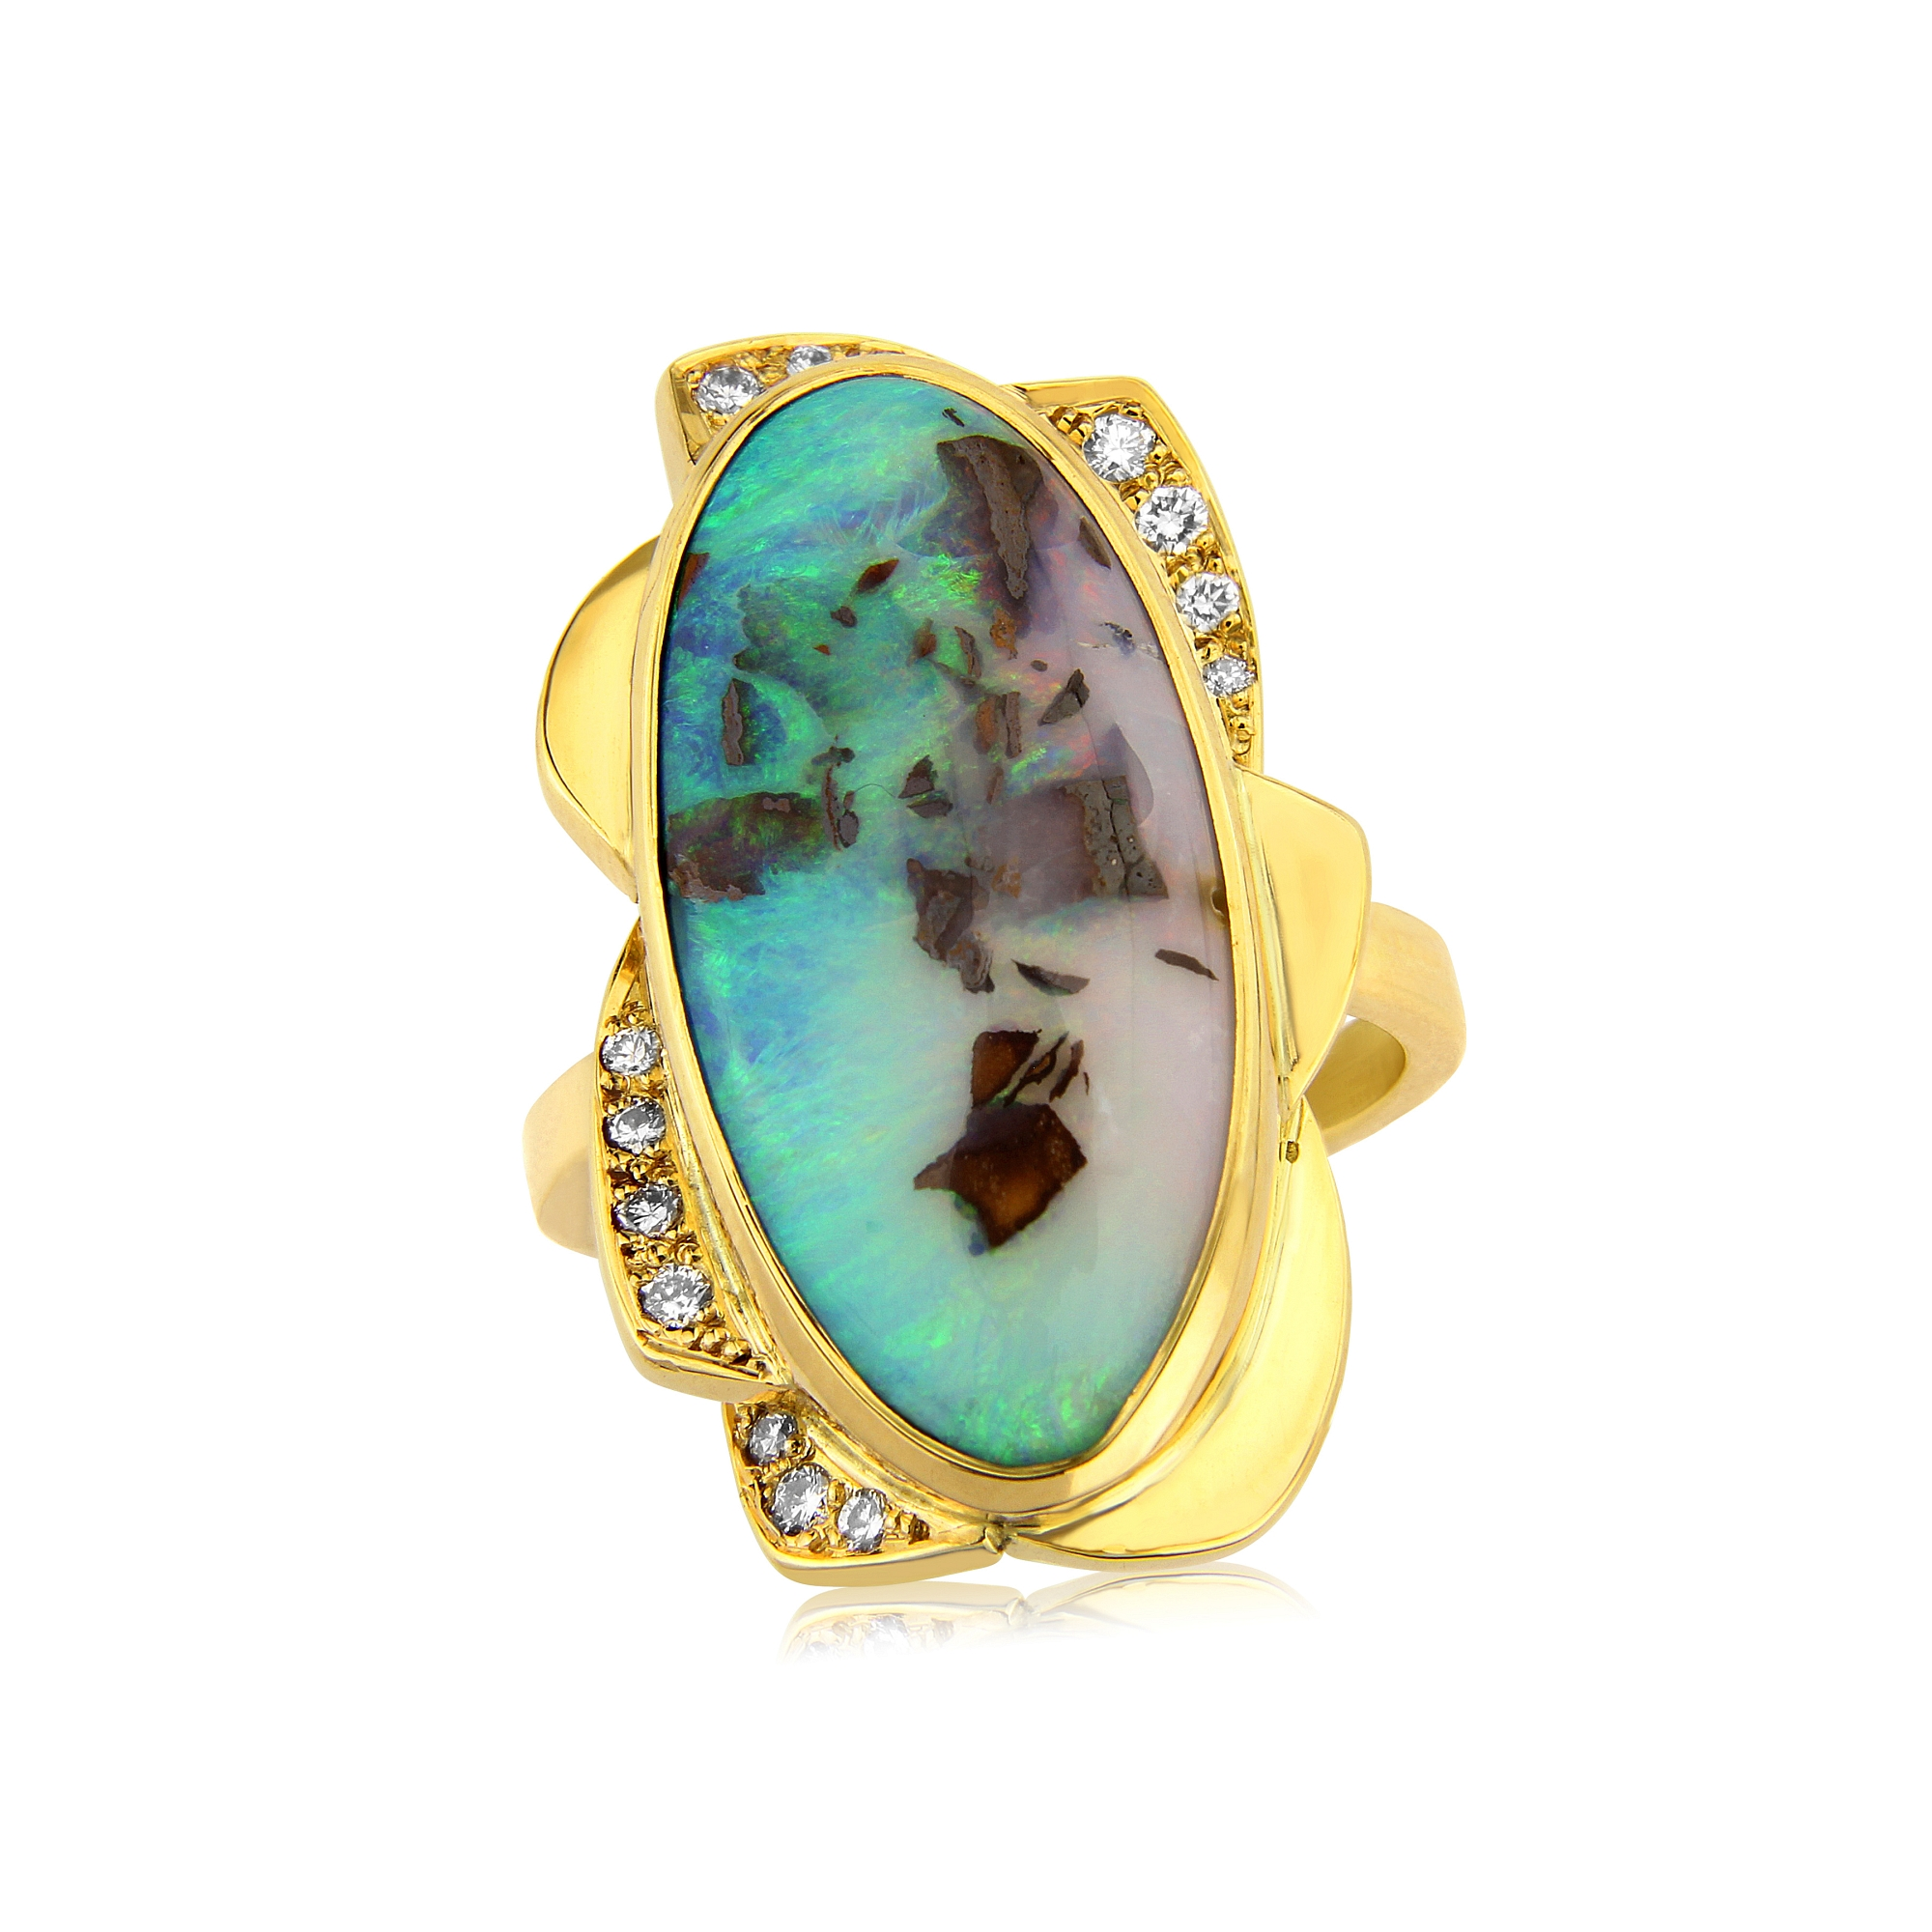 Stunning Australian Opal dress ring with diamonds mounted in 18ct gold. Designed and hand made by QVJ.